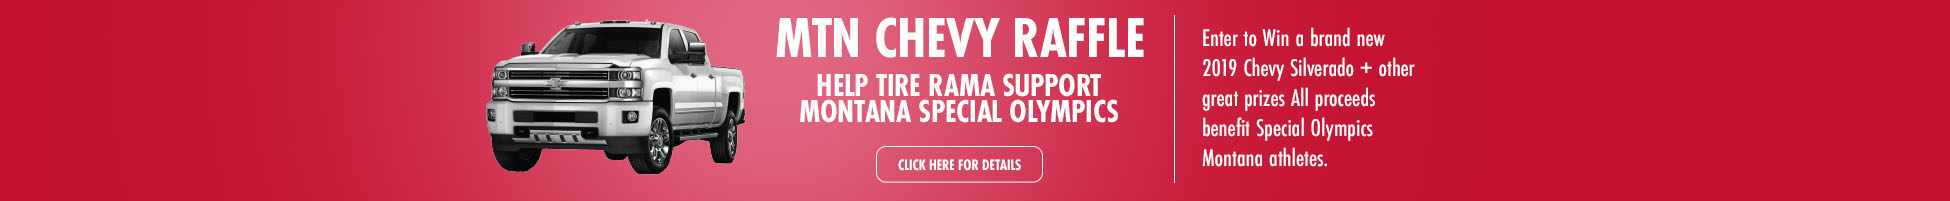 Tire Rama Locations In Montana And Washington Tires Auto Repair